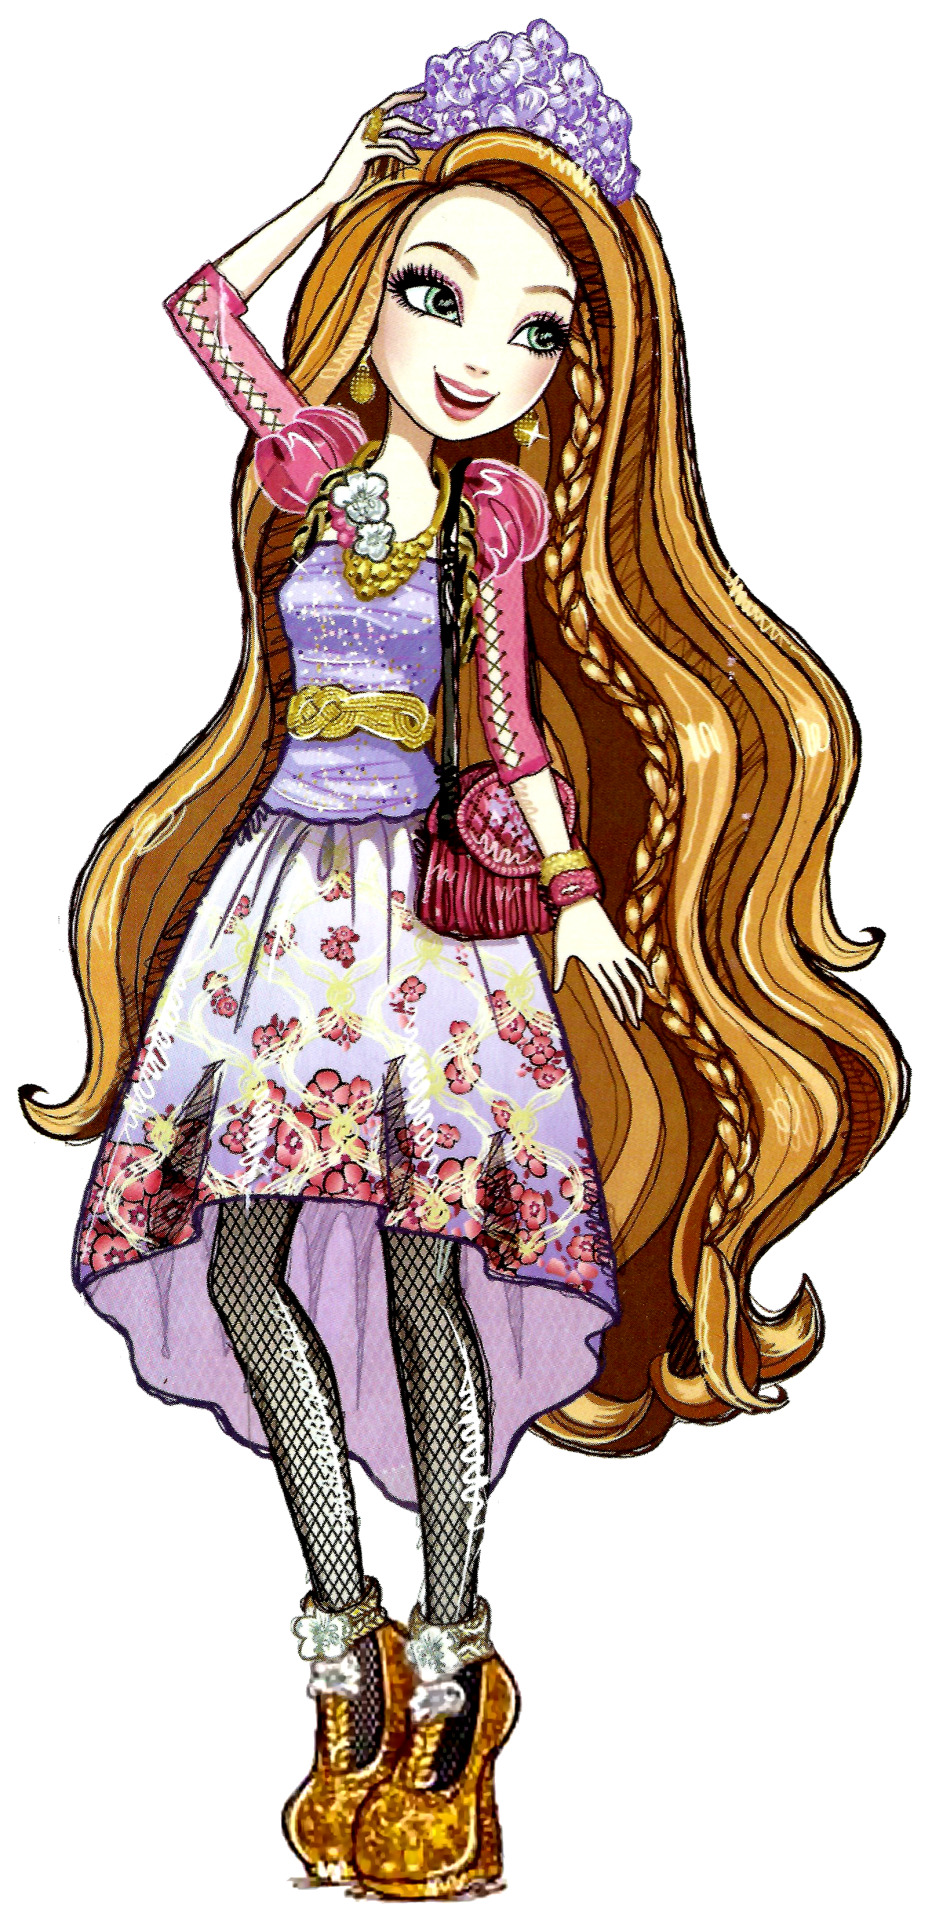 Pictures Of Holly Ohair Ever After High Rock Cafe